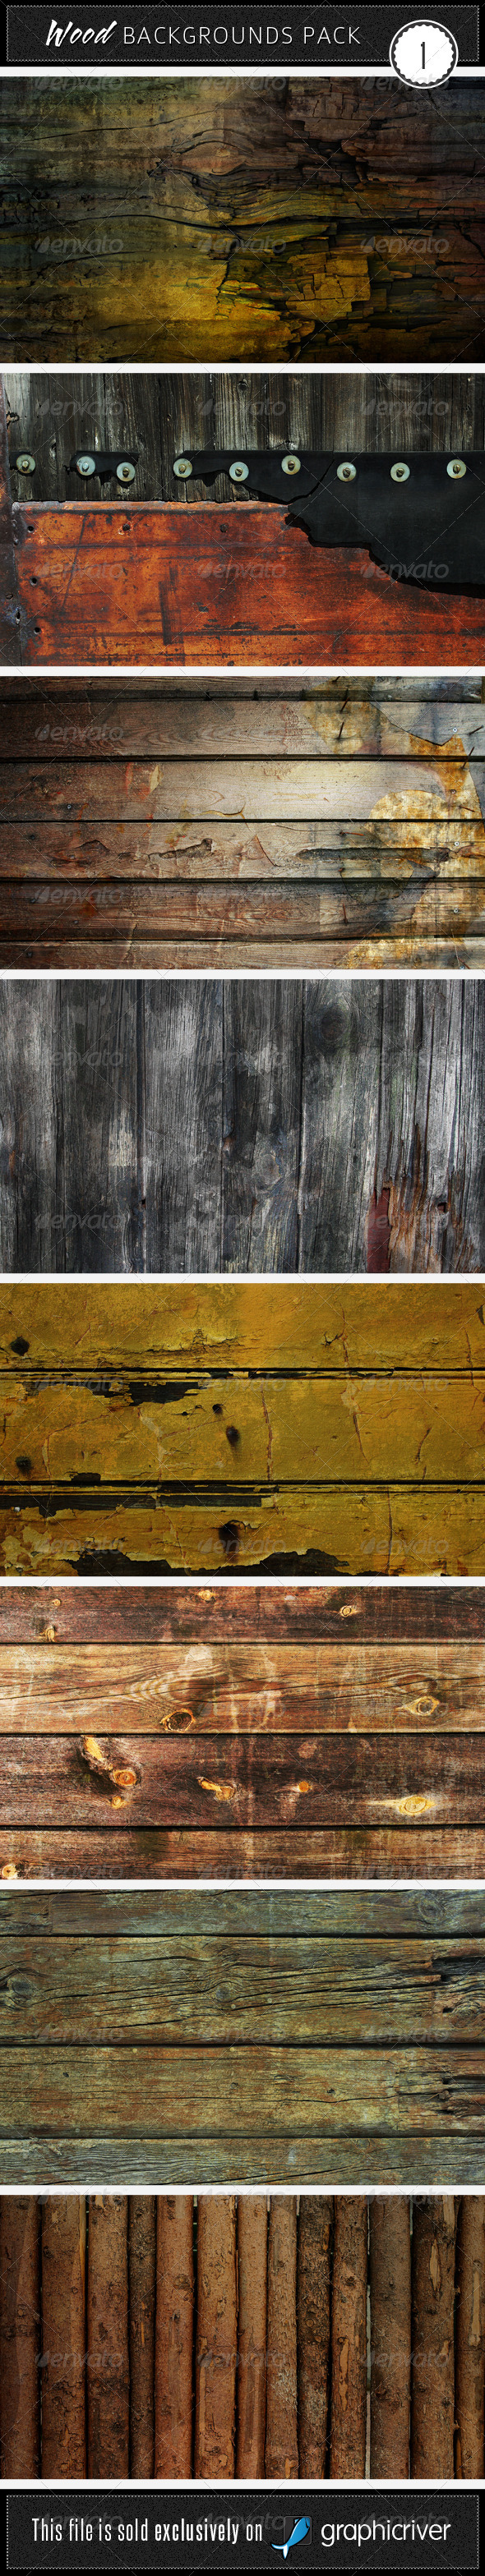 Wood Backgrounds Pack 1